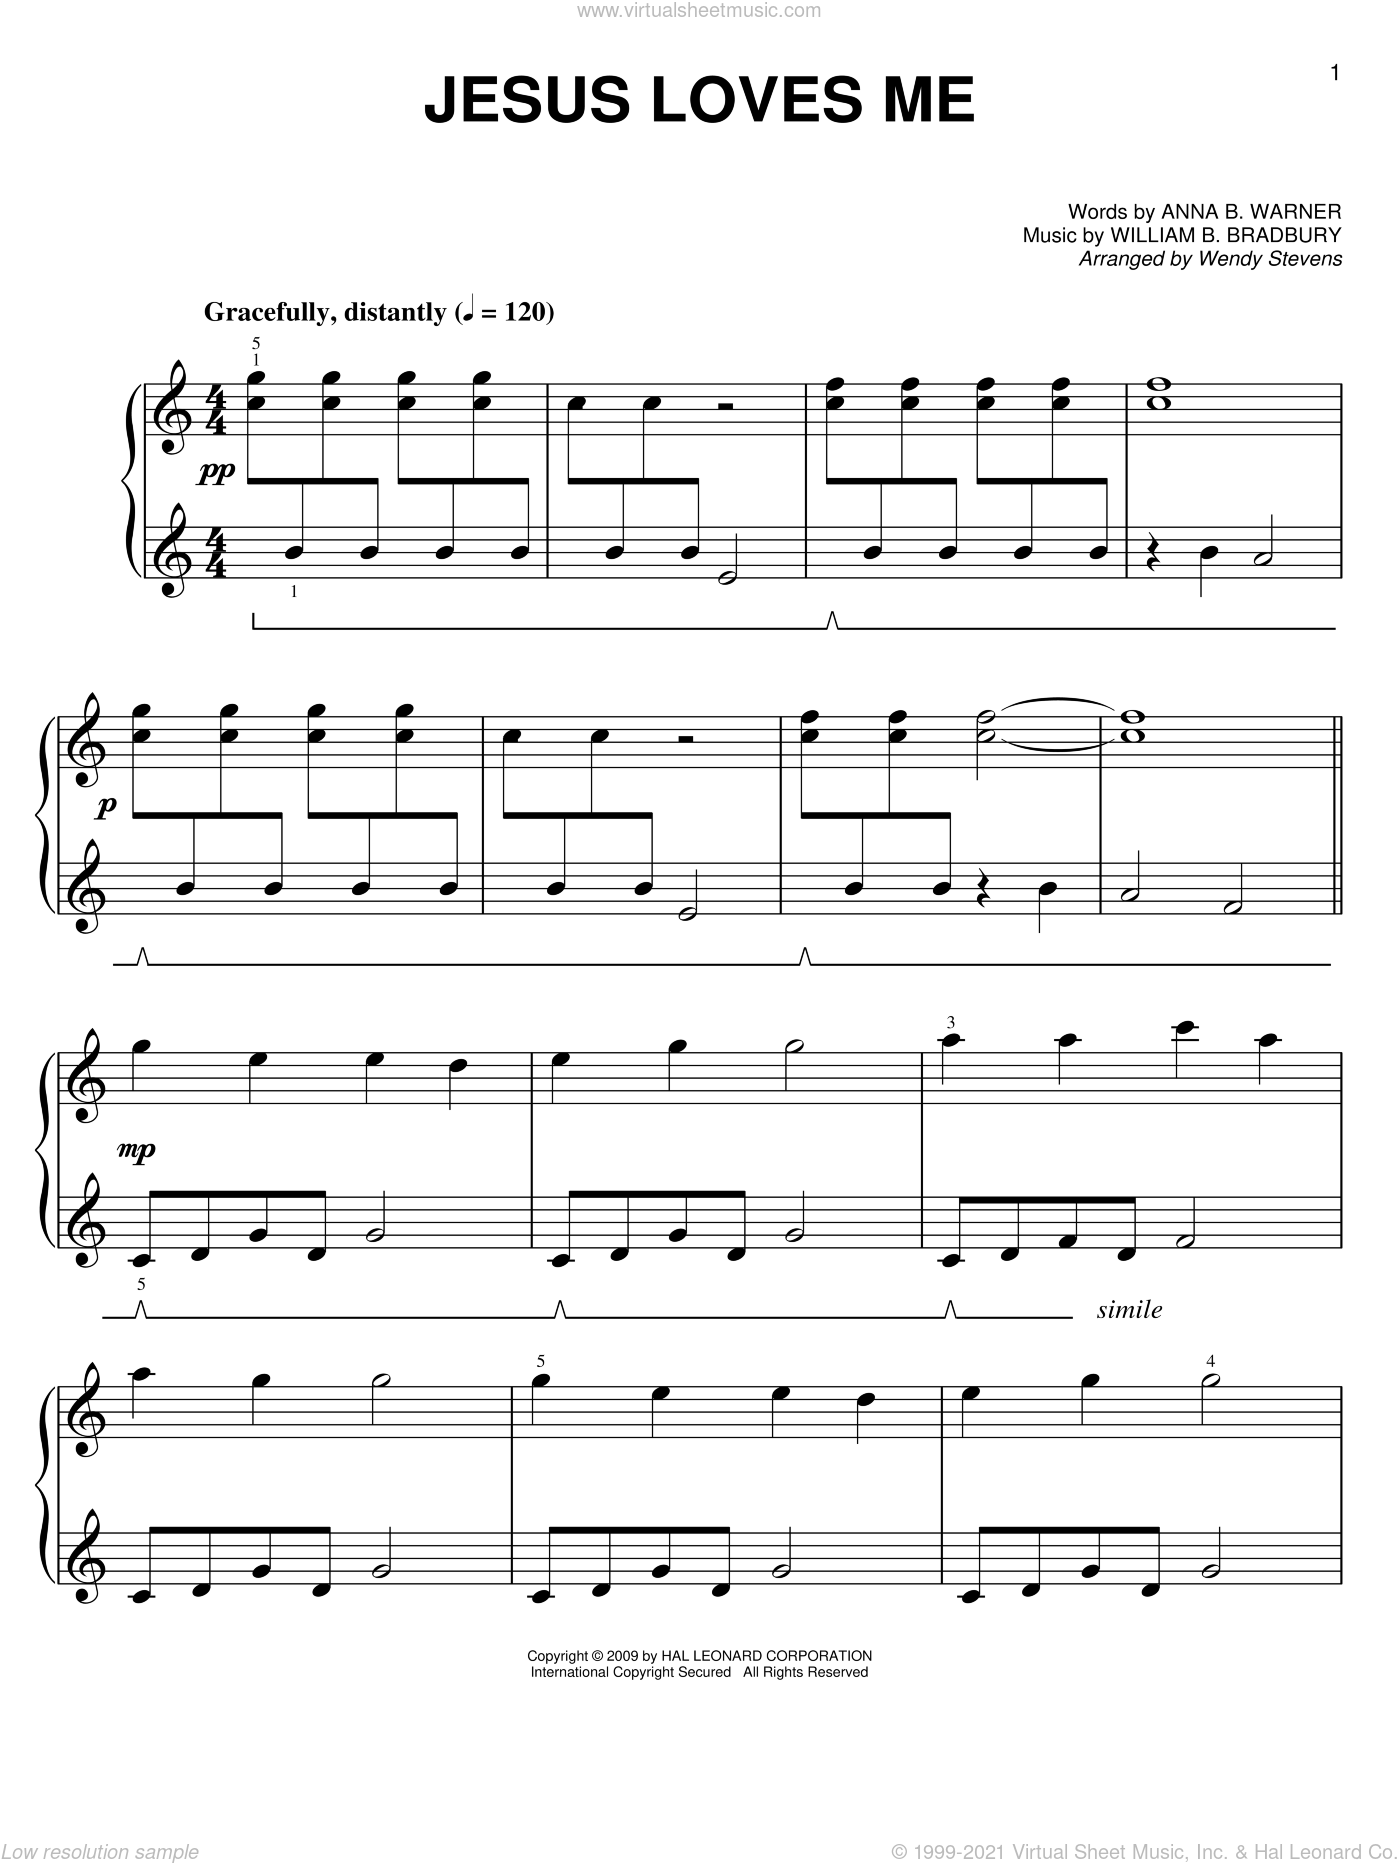 Jesus Loves Me sheet music for piano solo by William B. Bradbury